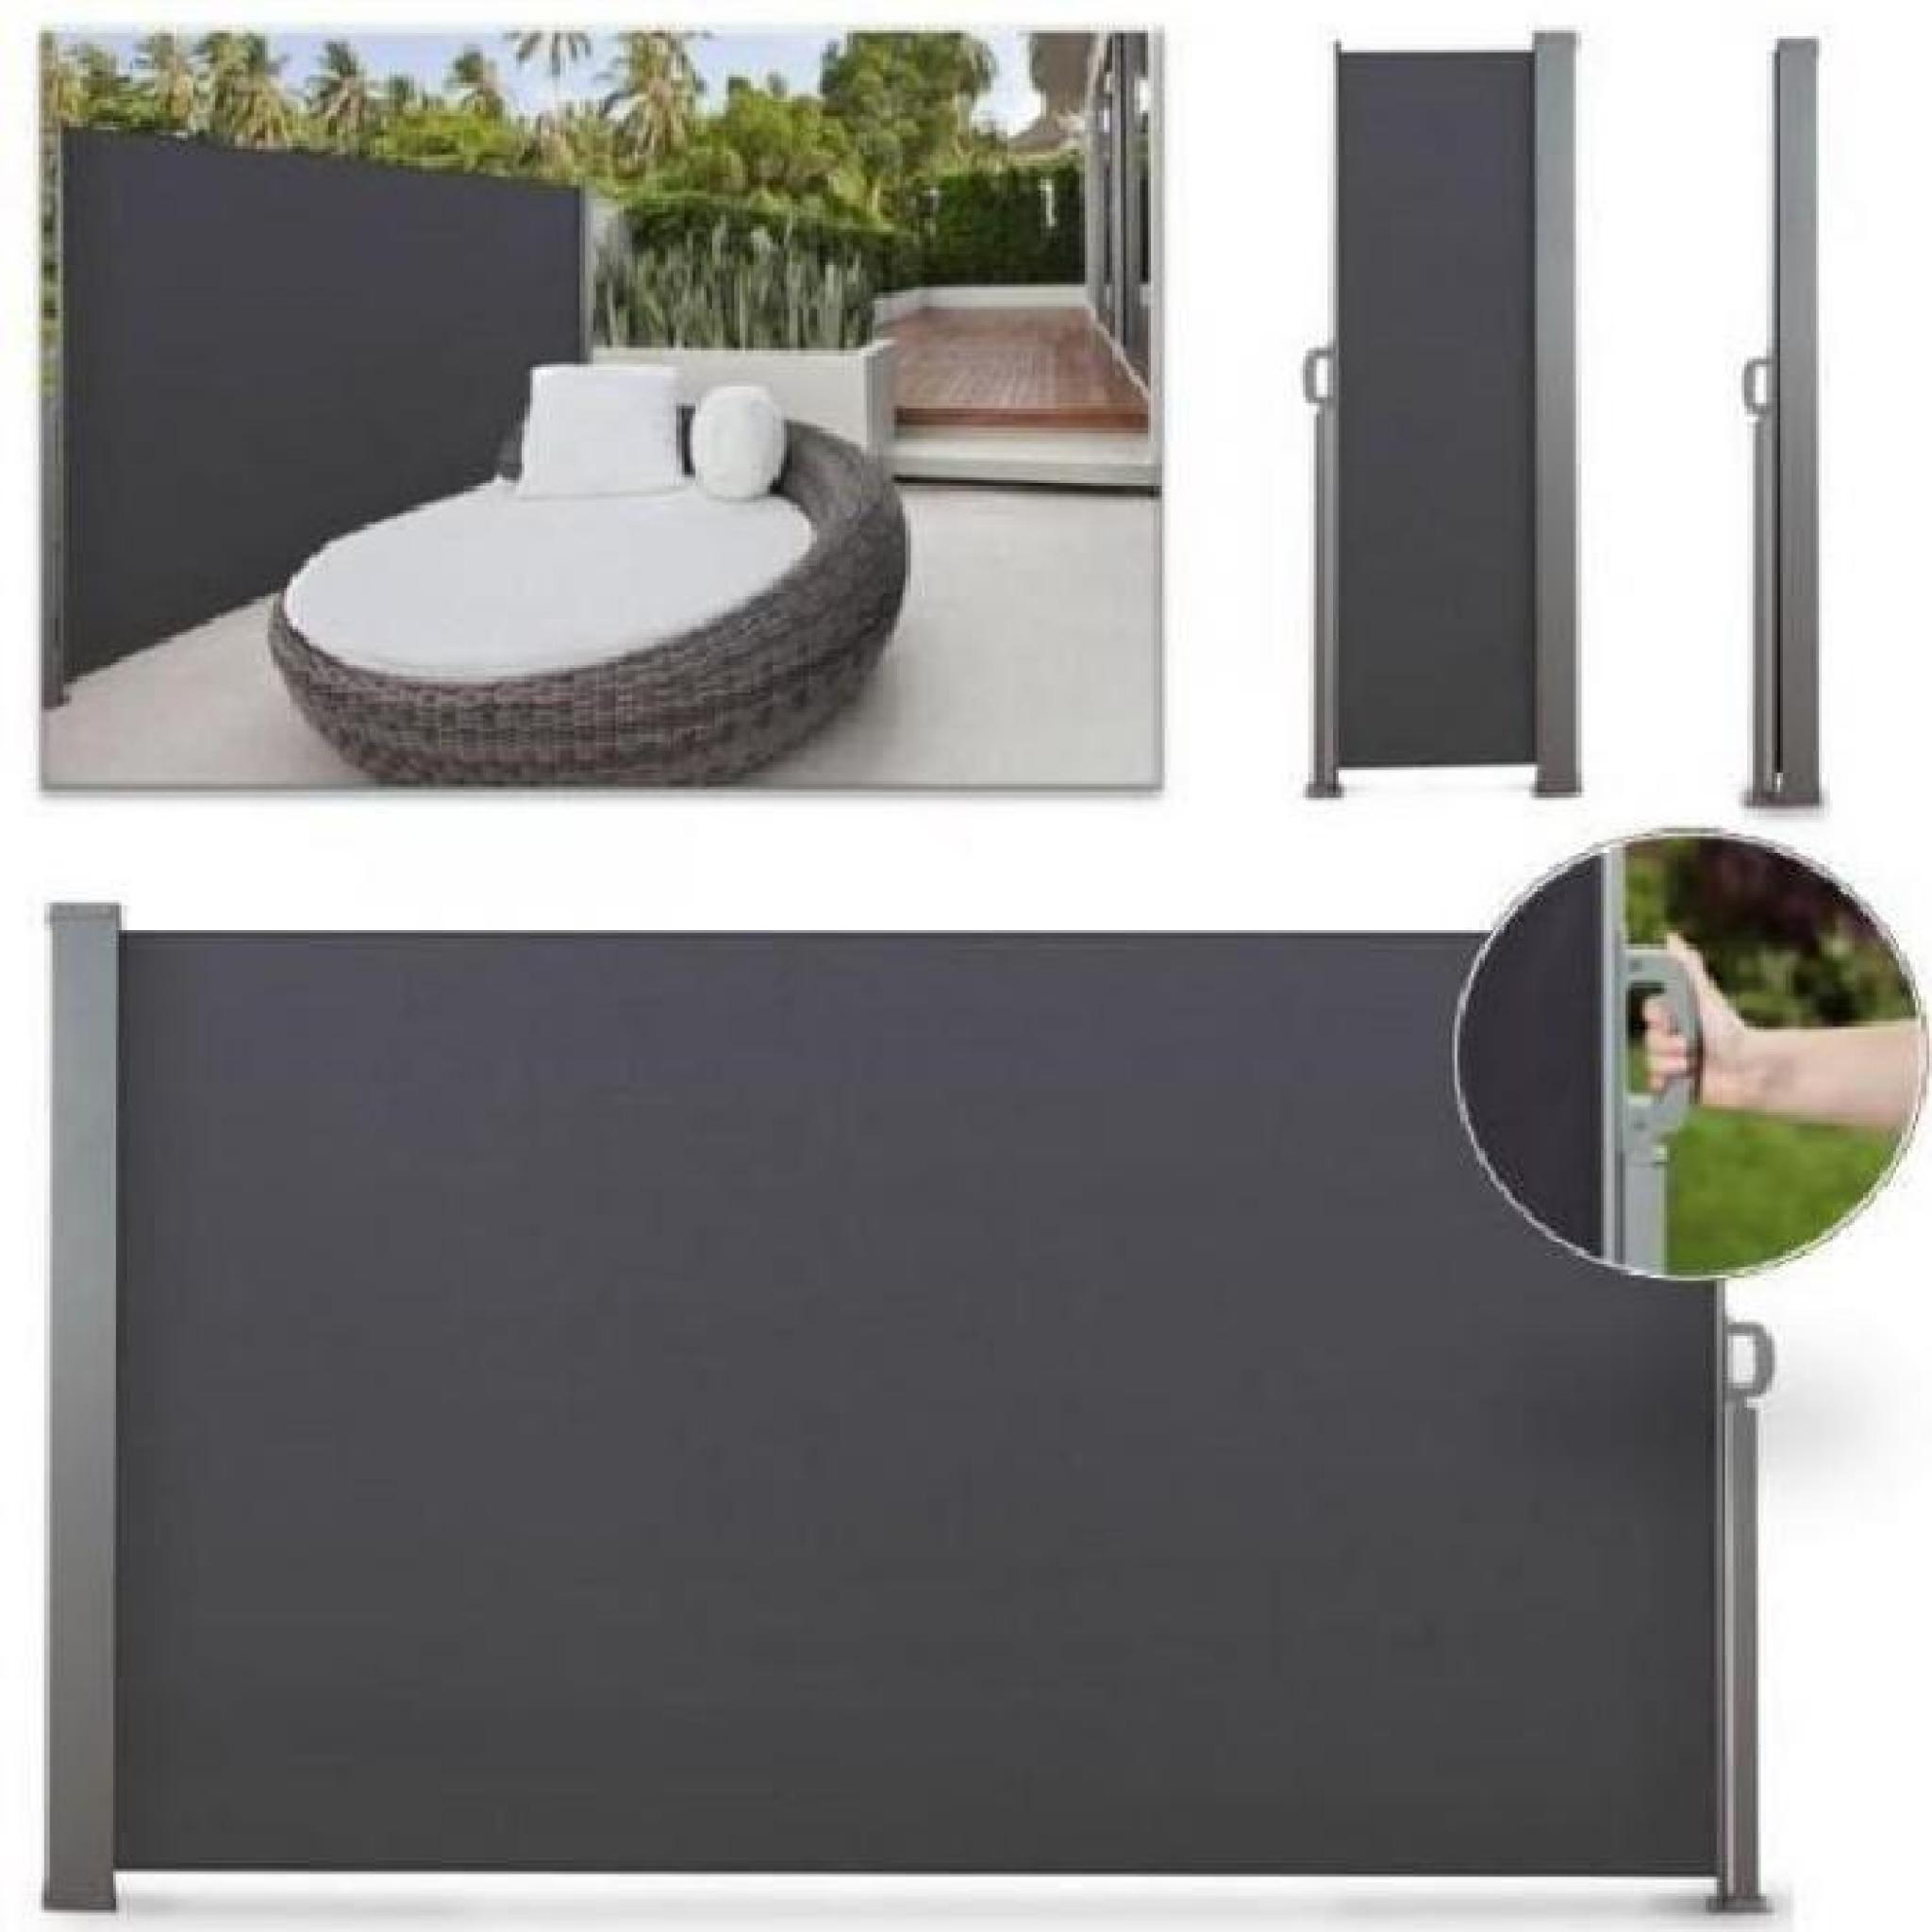 Exterieur Terrasse Gifi Paravent Rtractable Extrieur Gifi Beautiful Paravent